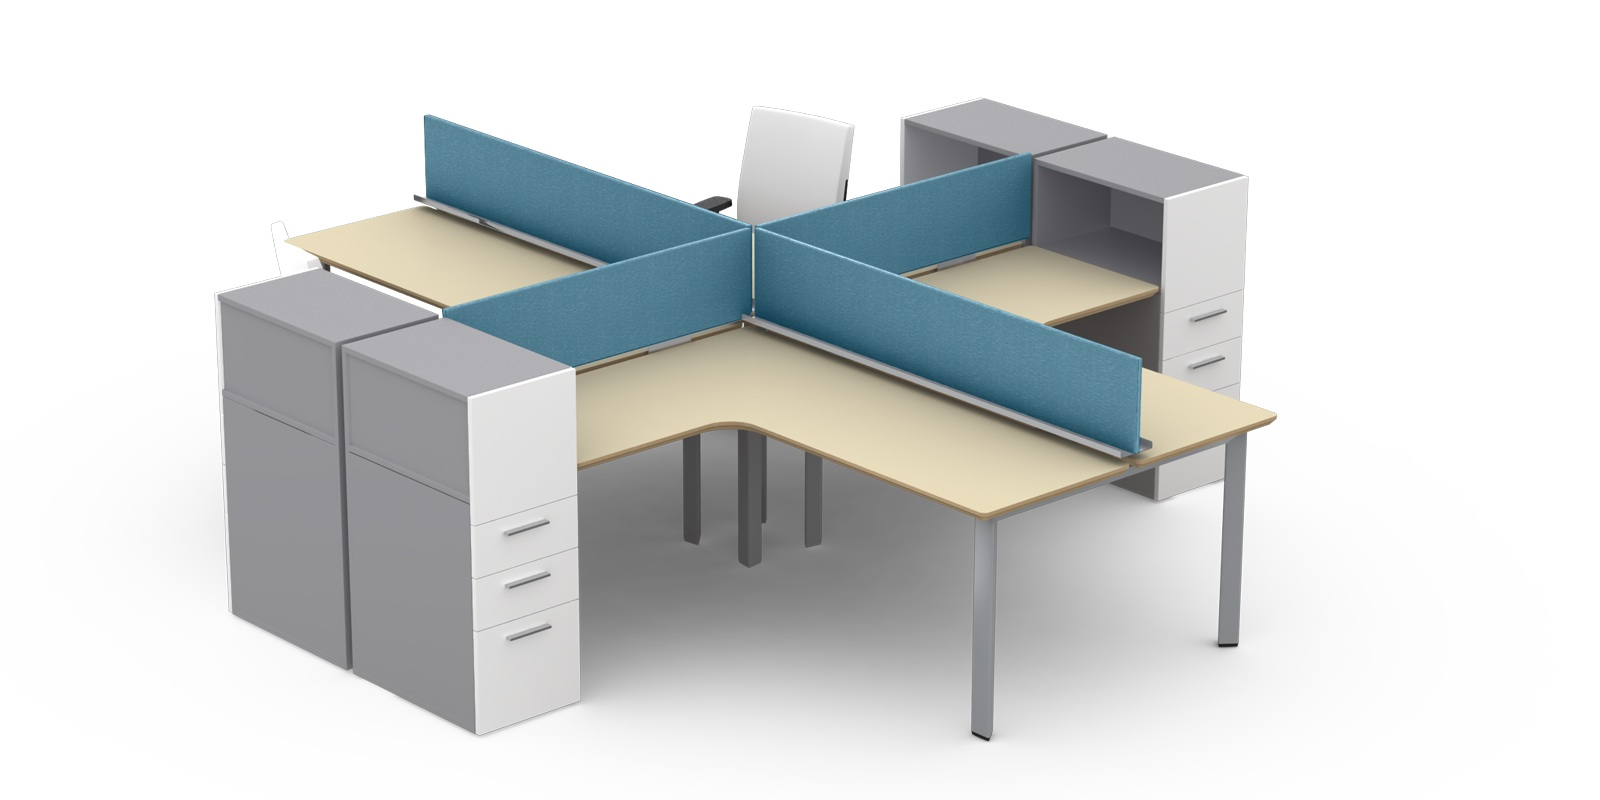 Modular fice Furniture M2 Open fice Plans by